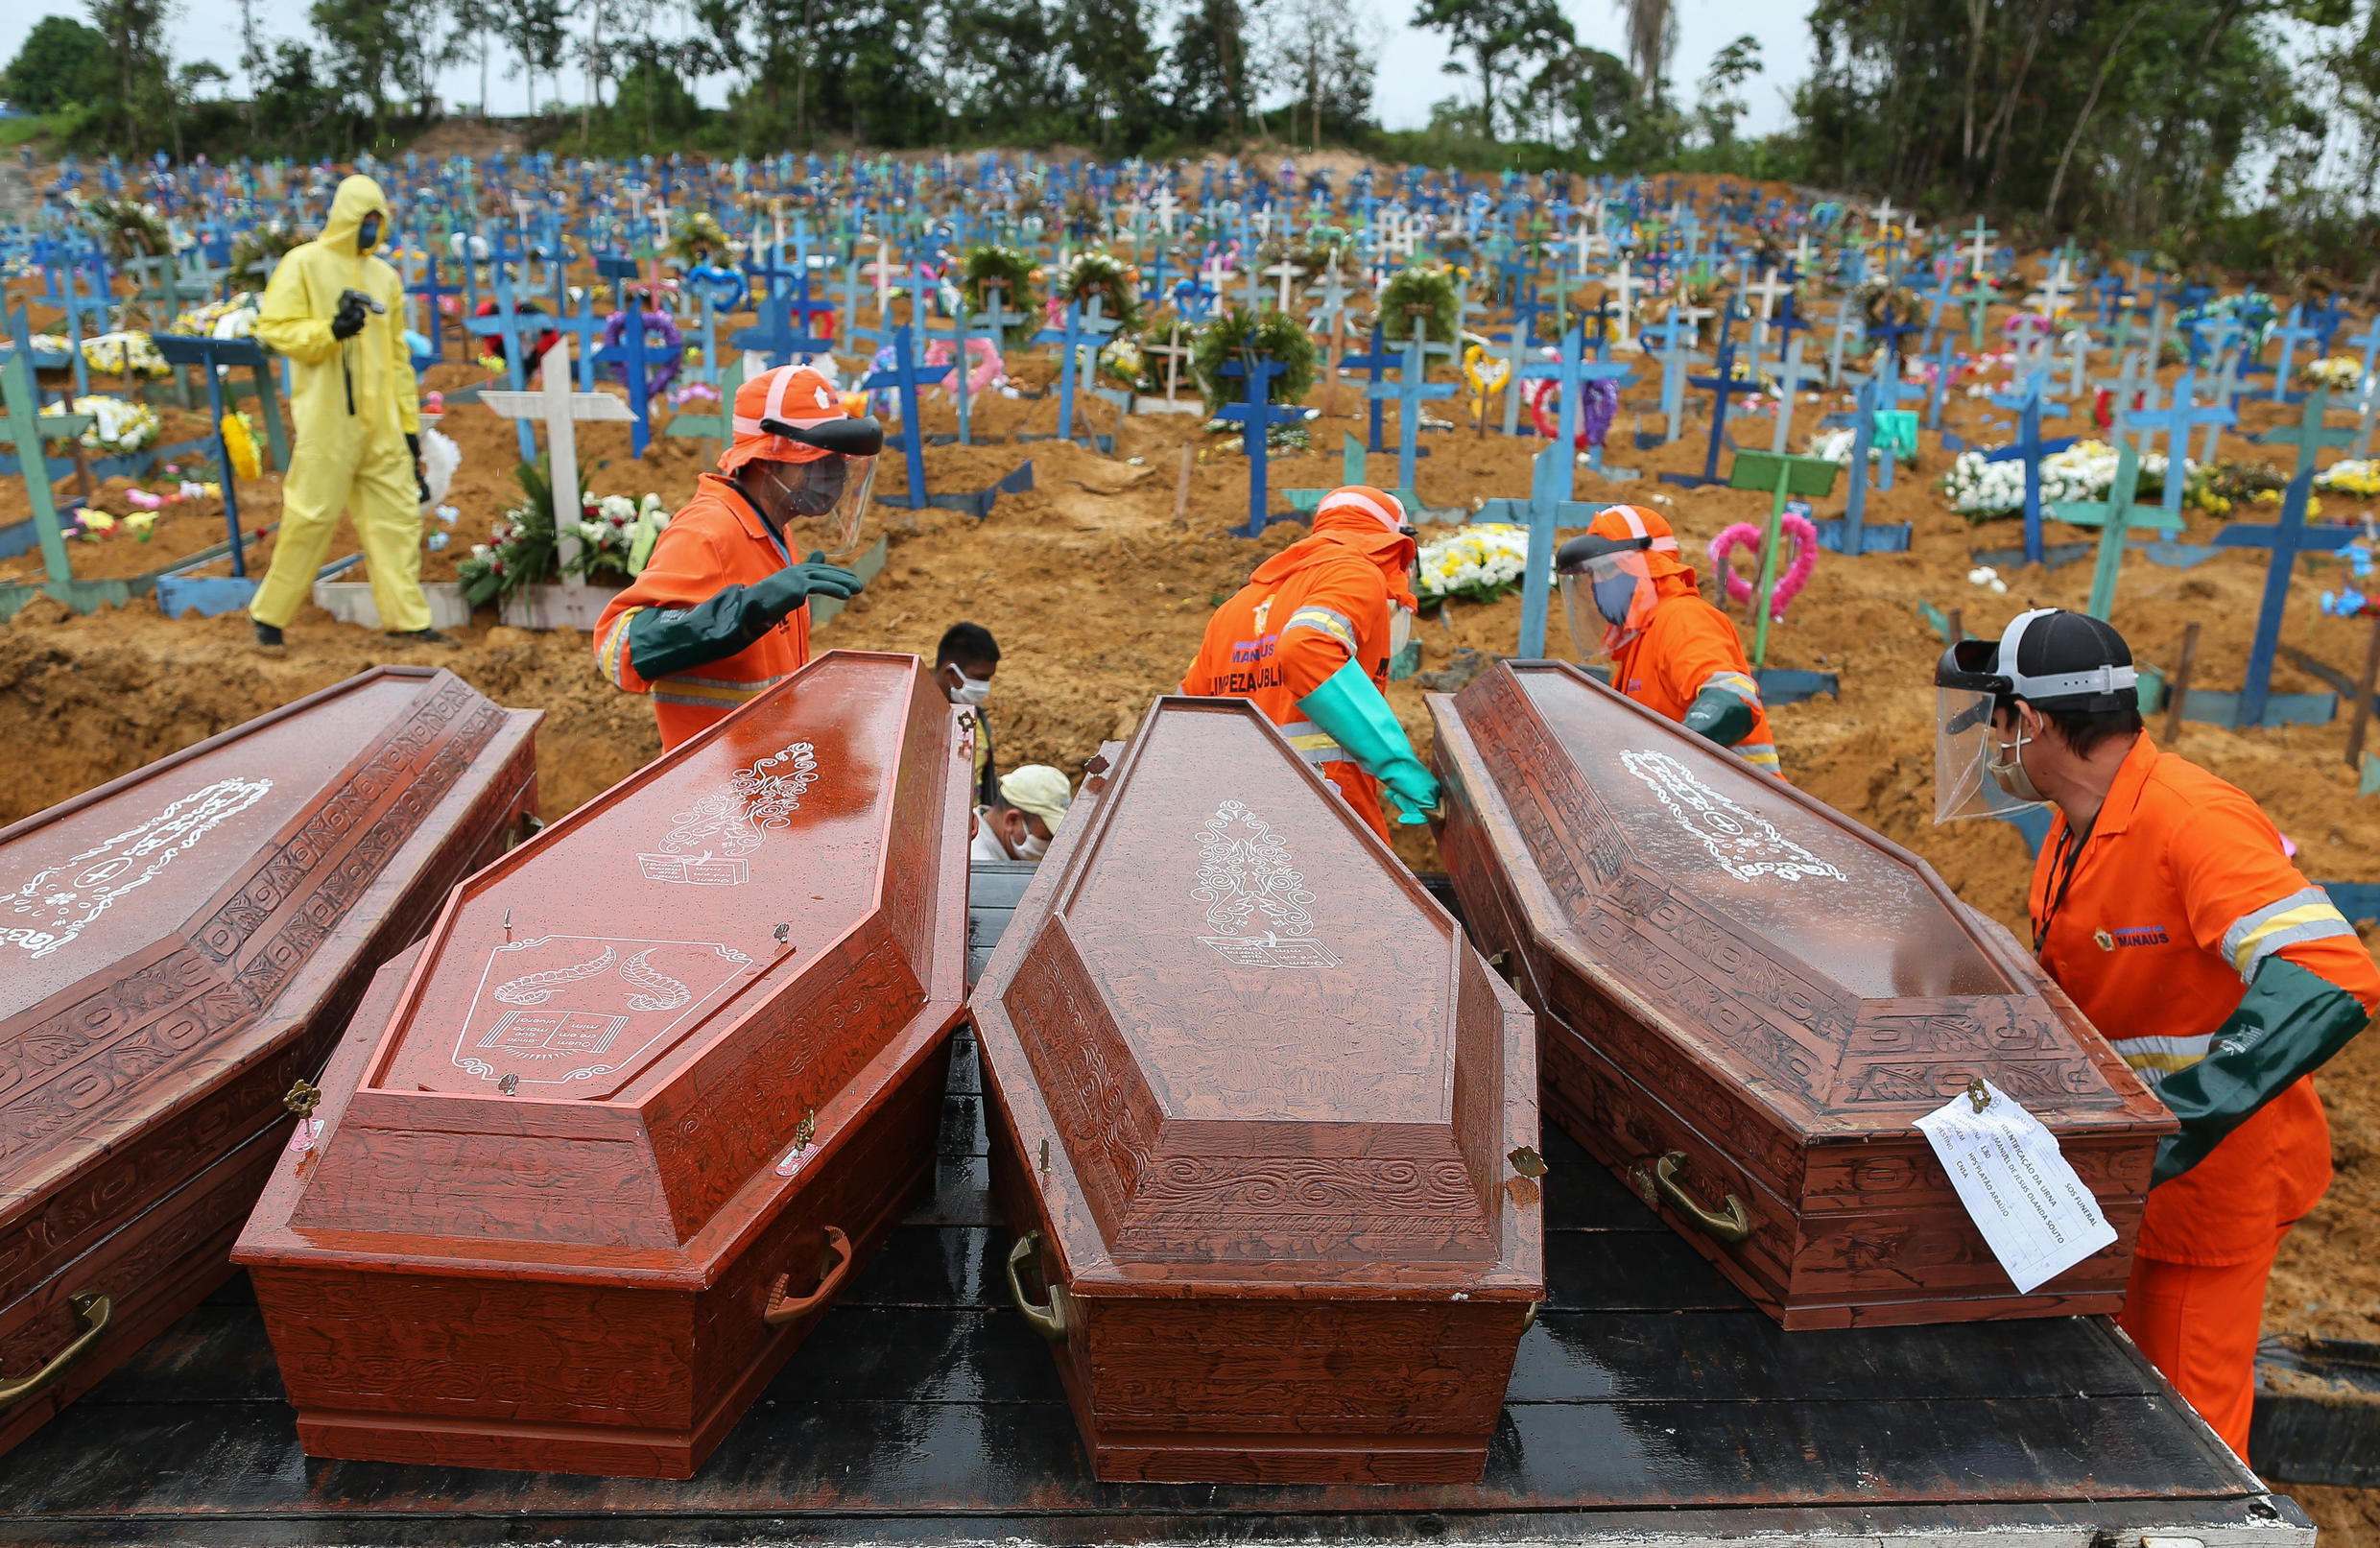 Covid-19 victims are buried at the Nossa Senhora de Manaus cemetery in Manaus, Brazil, on April 6, 2020.